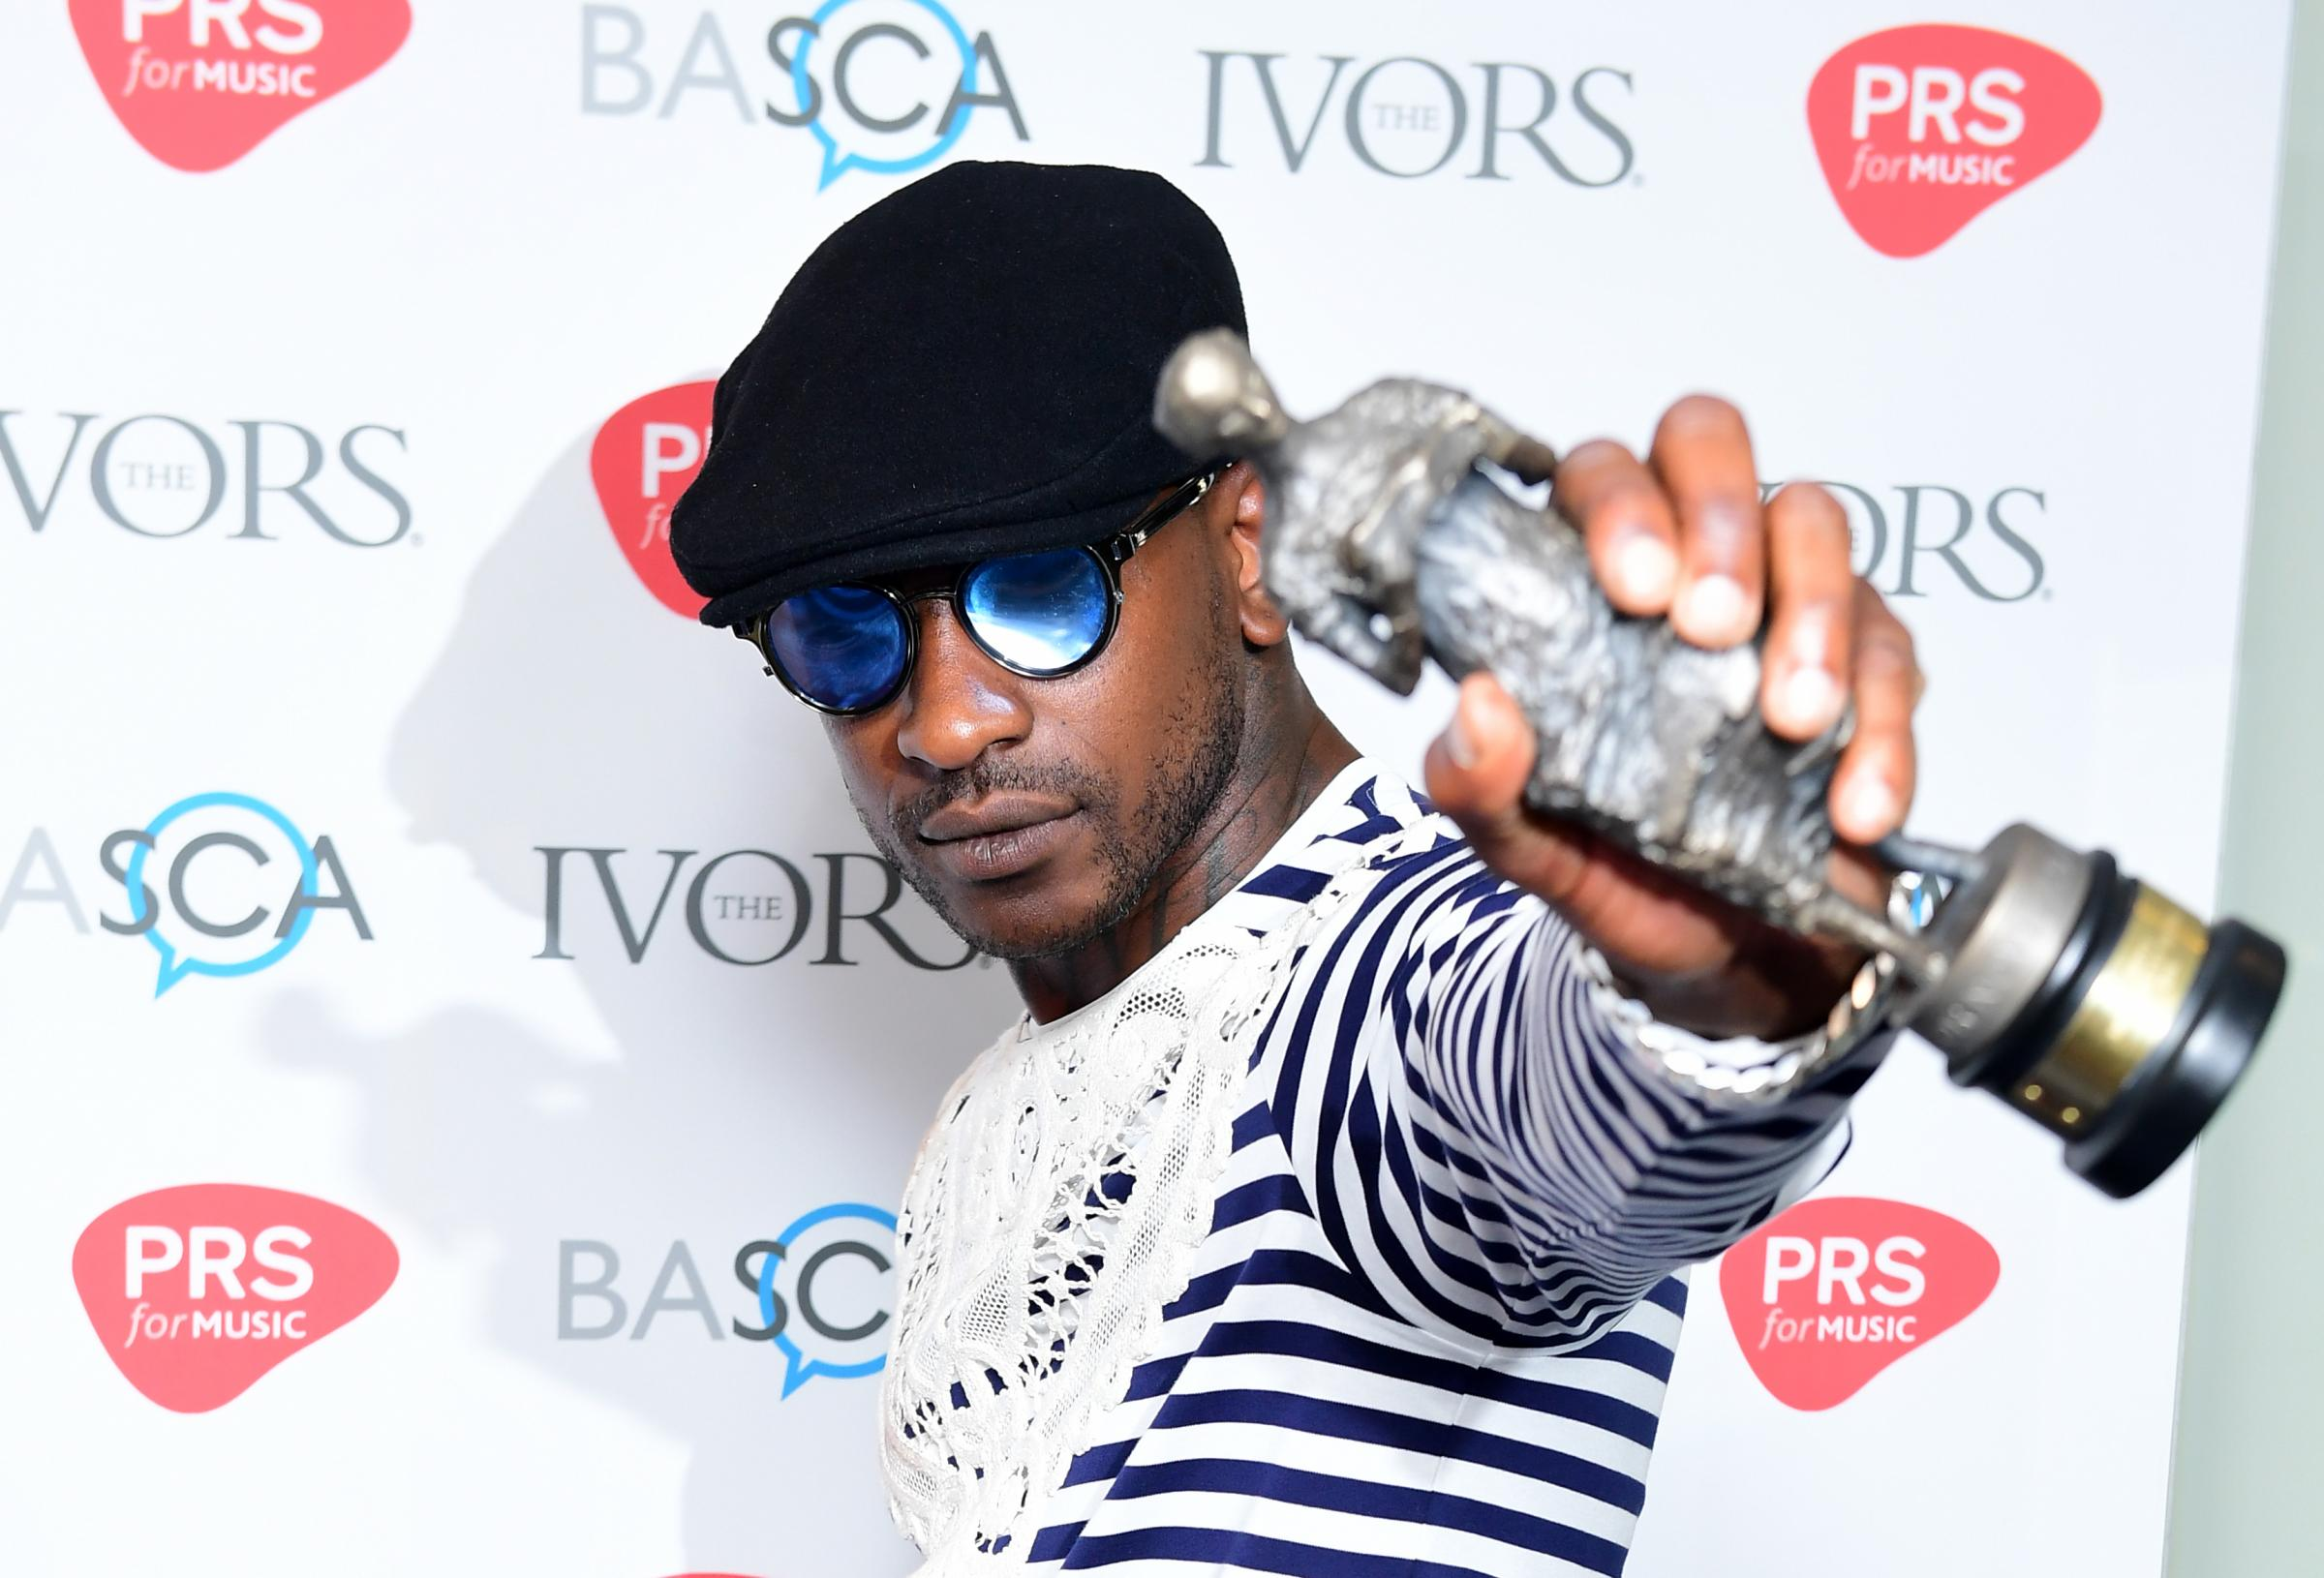 Is Skepta working on a project with Sir Mick Jagger?